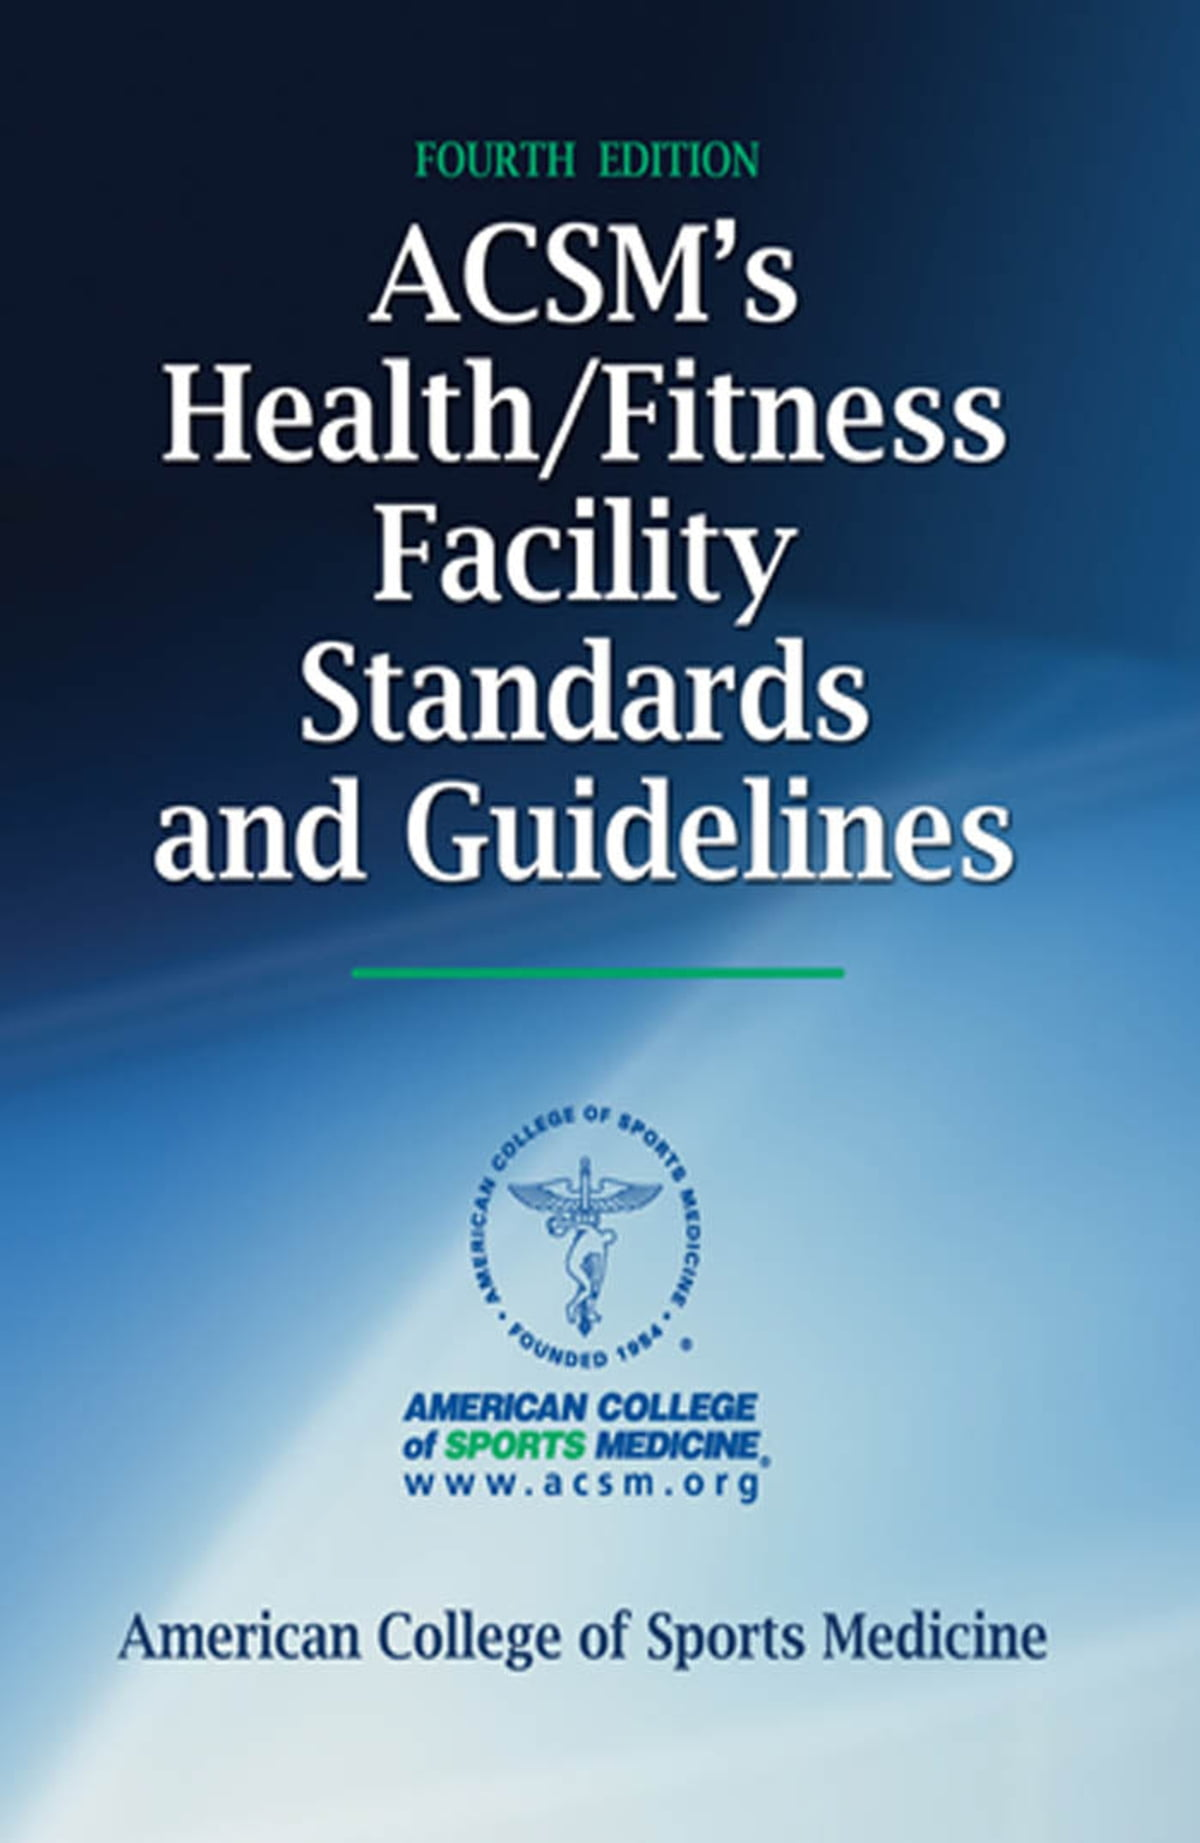 ACSM's Health/Fitness Facility Standards and Guidelines 4th Edition eBook  by American College of Sports Medicine - 9781450443494 | Rakuten Kobo